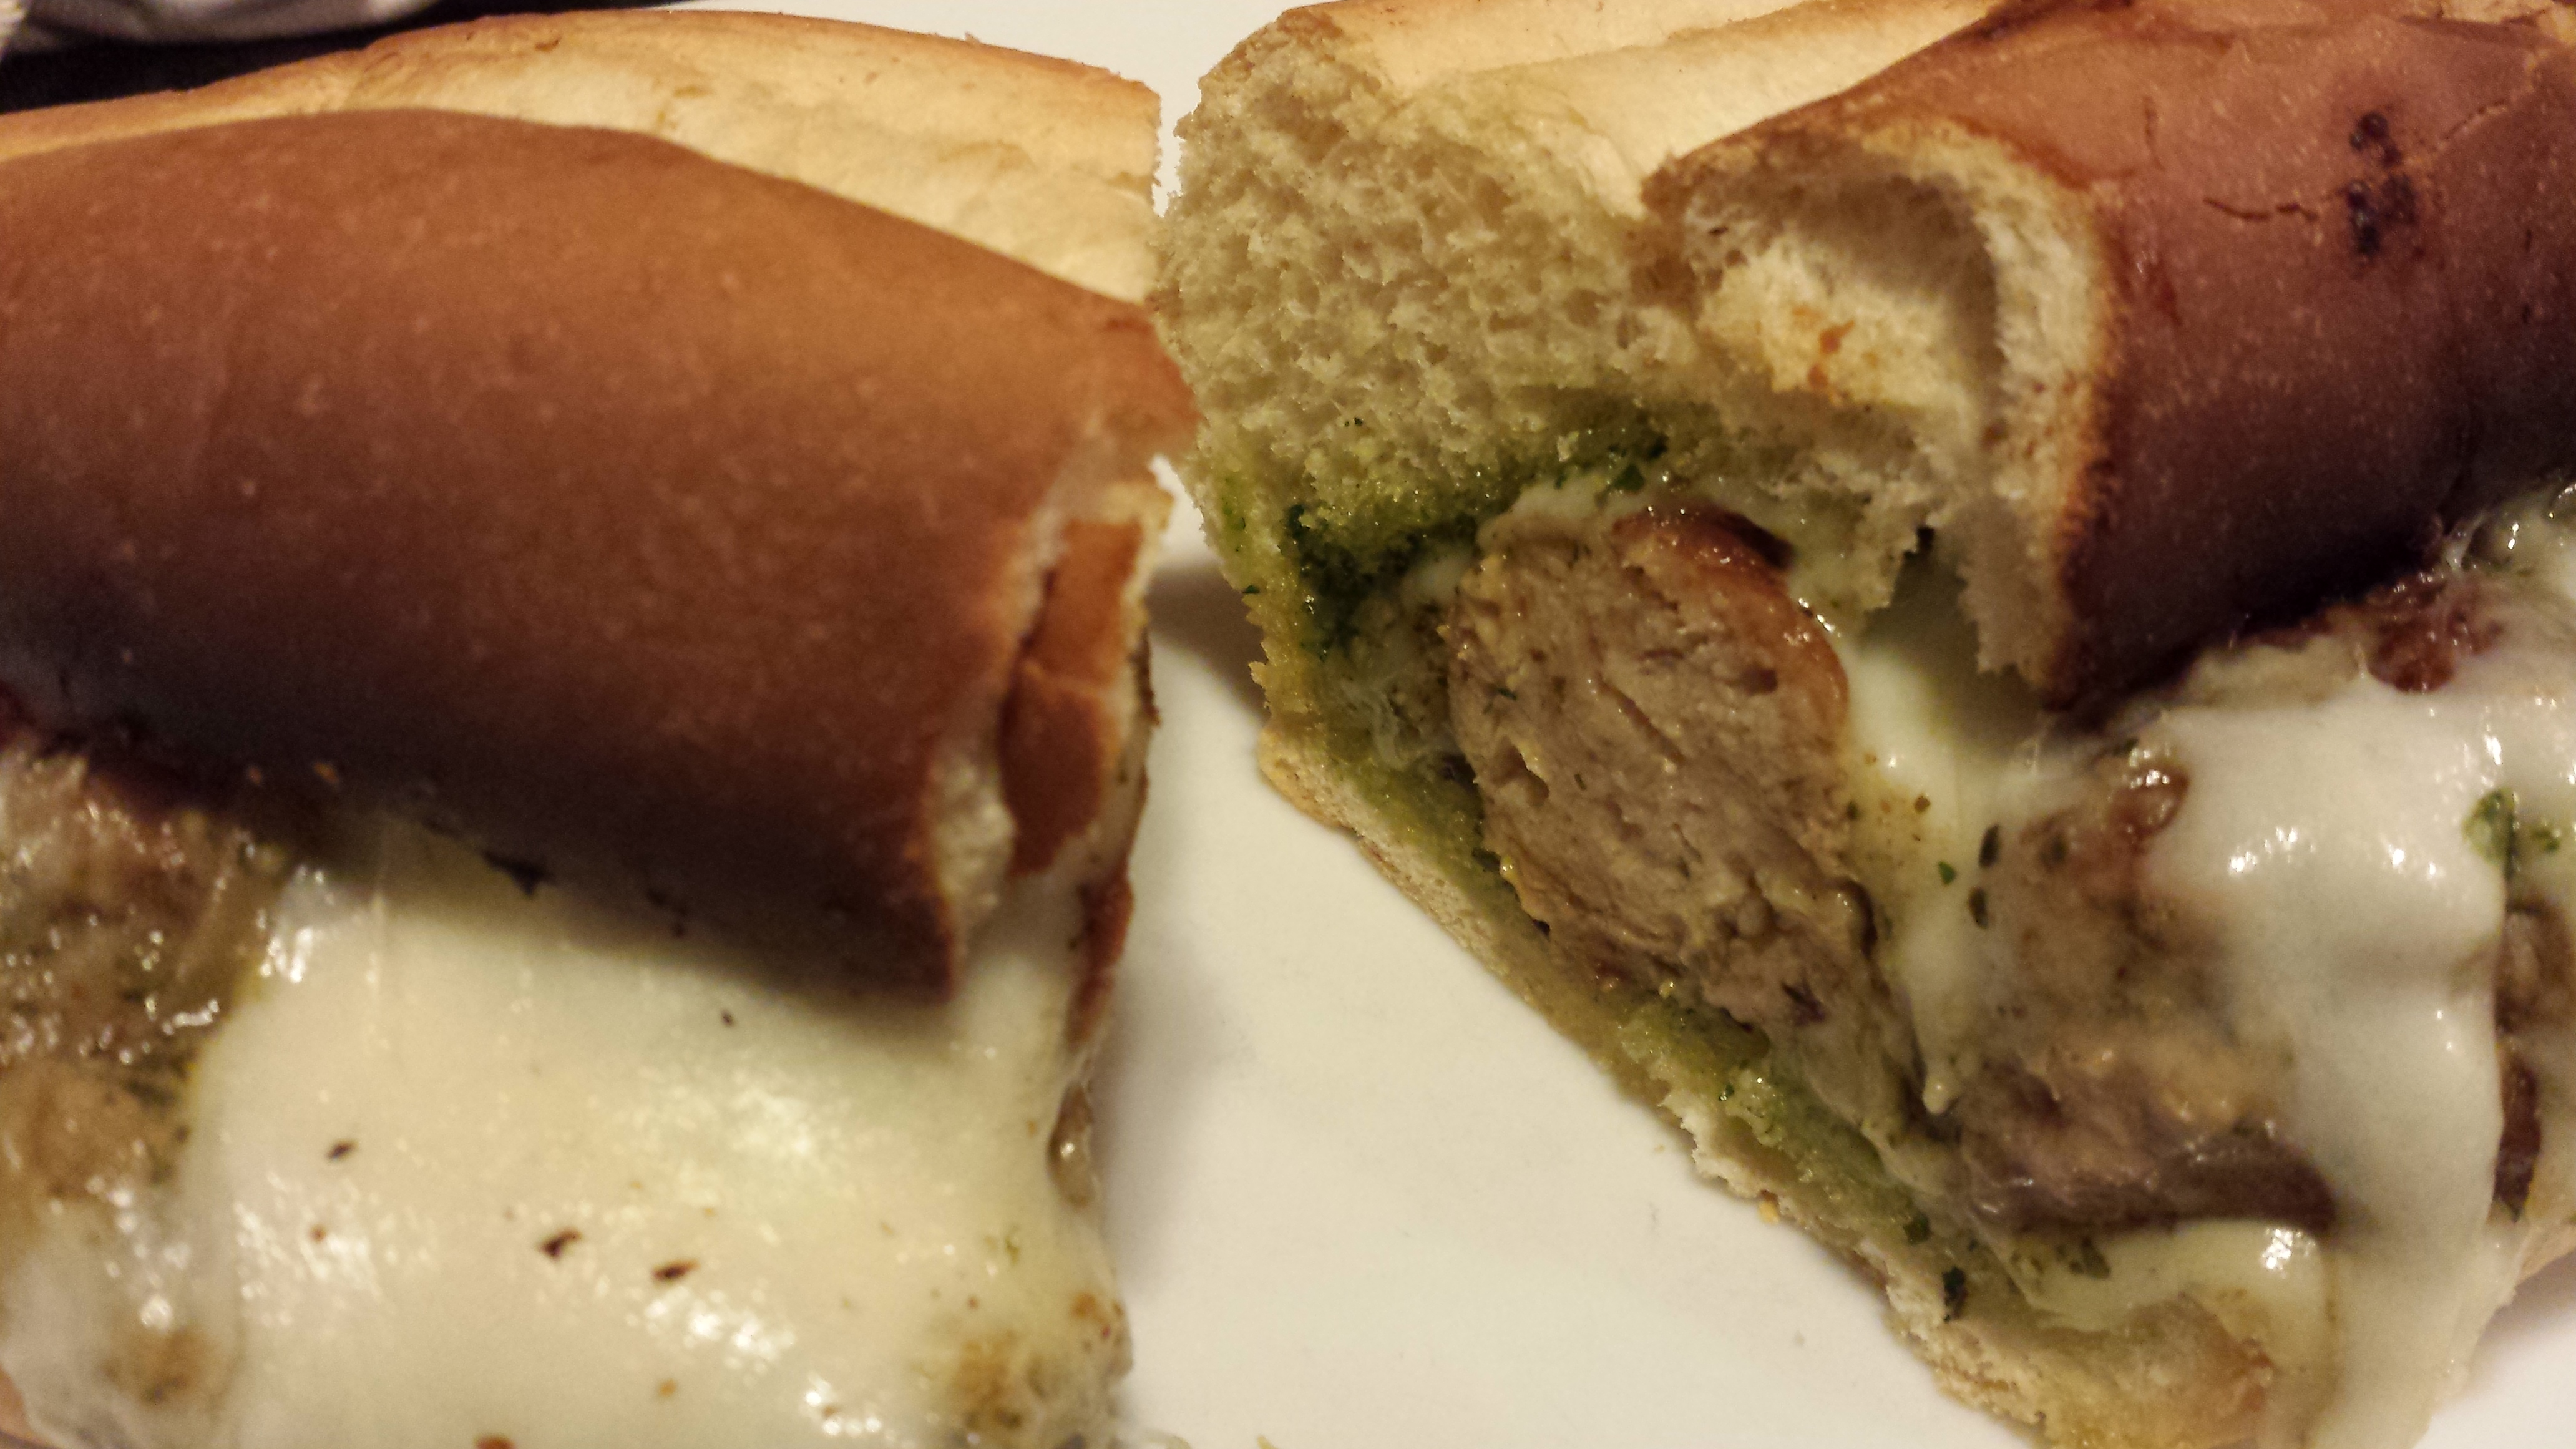 Ooey Gooey Pesto Turkey Meatball Sandwich (Photo Credit: Adroit Ideals)